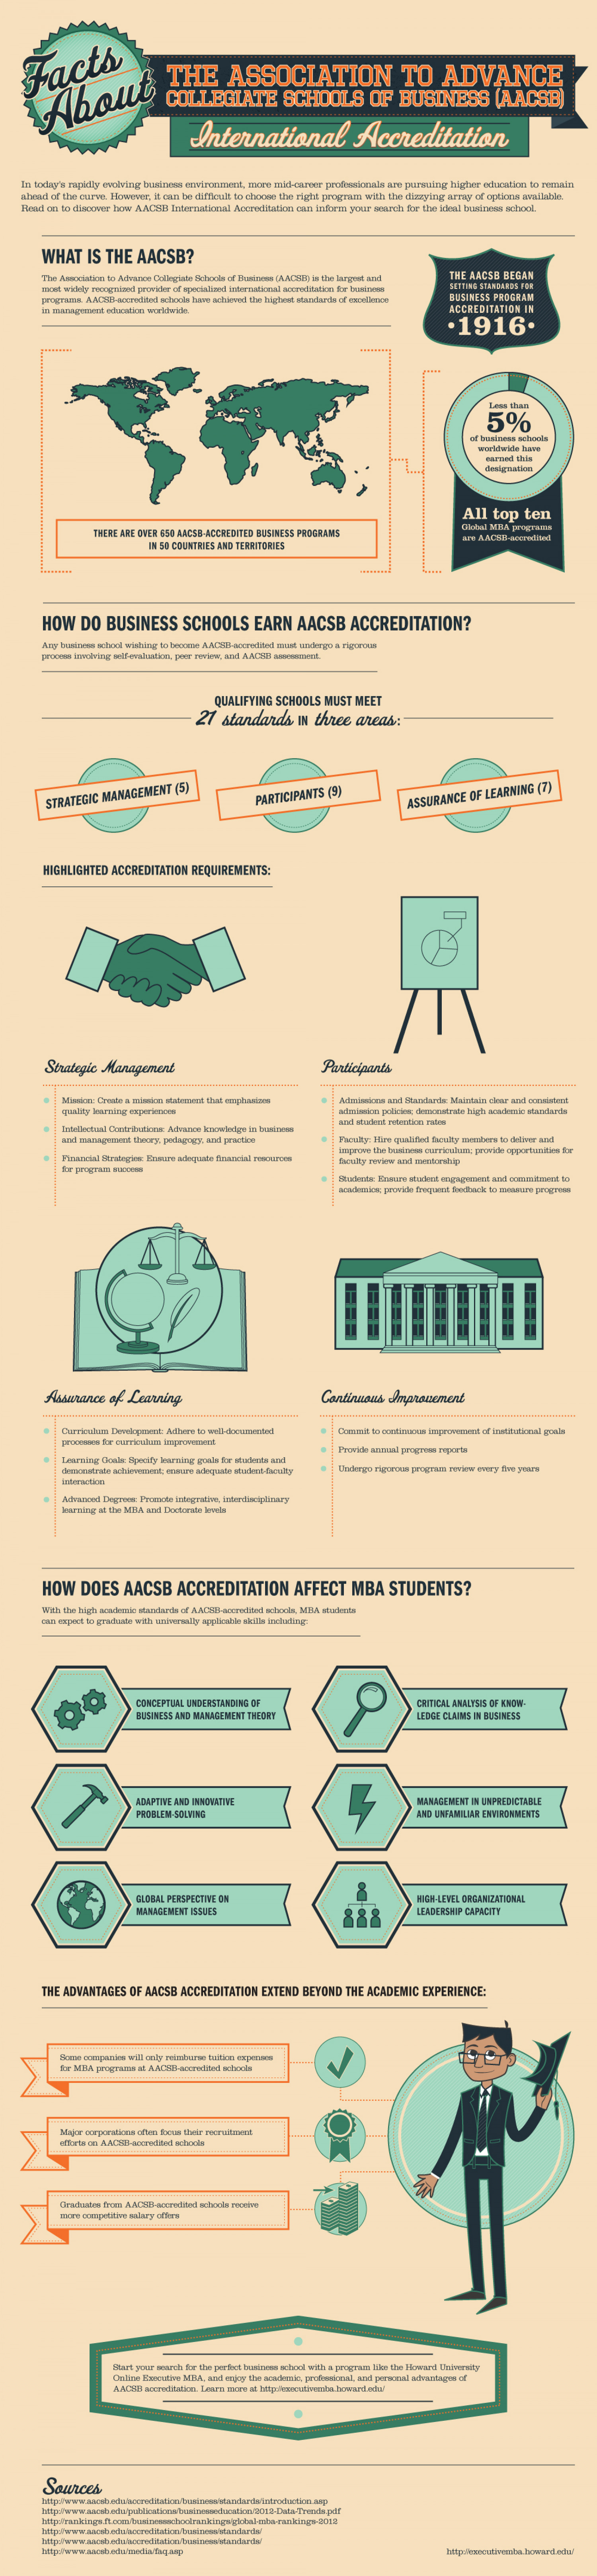 Facts About AACSB International Accreditation: A Closer Look Infographic